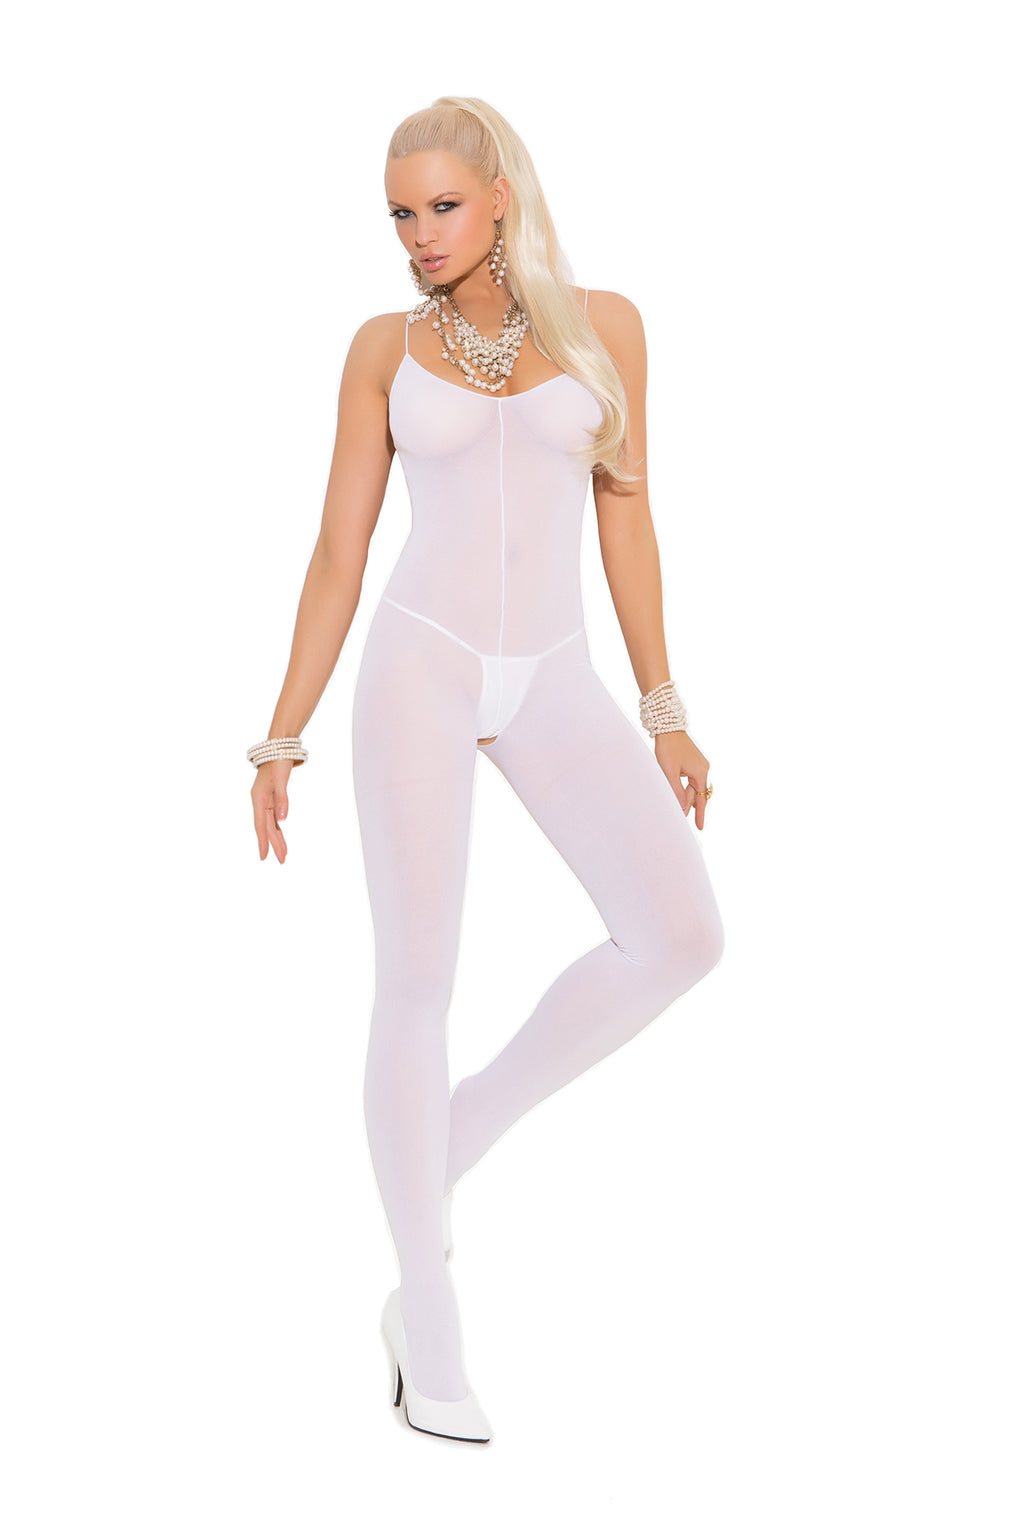 Elegant Moments 1601 White Bodystocking